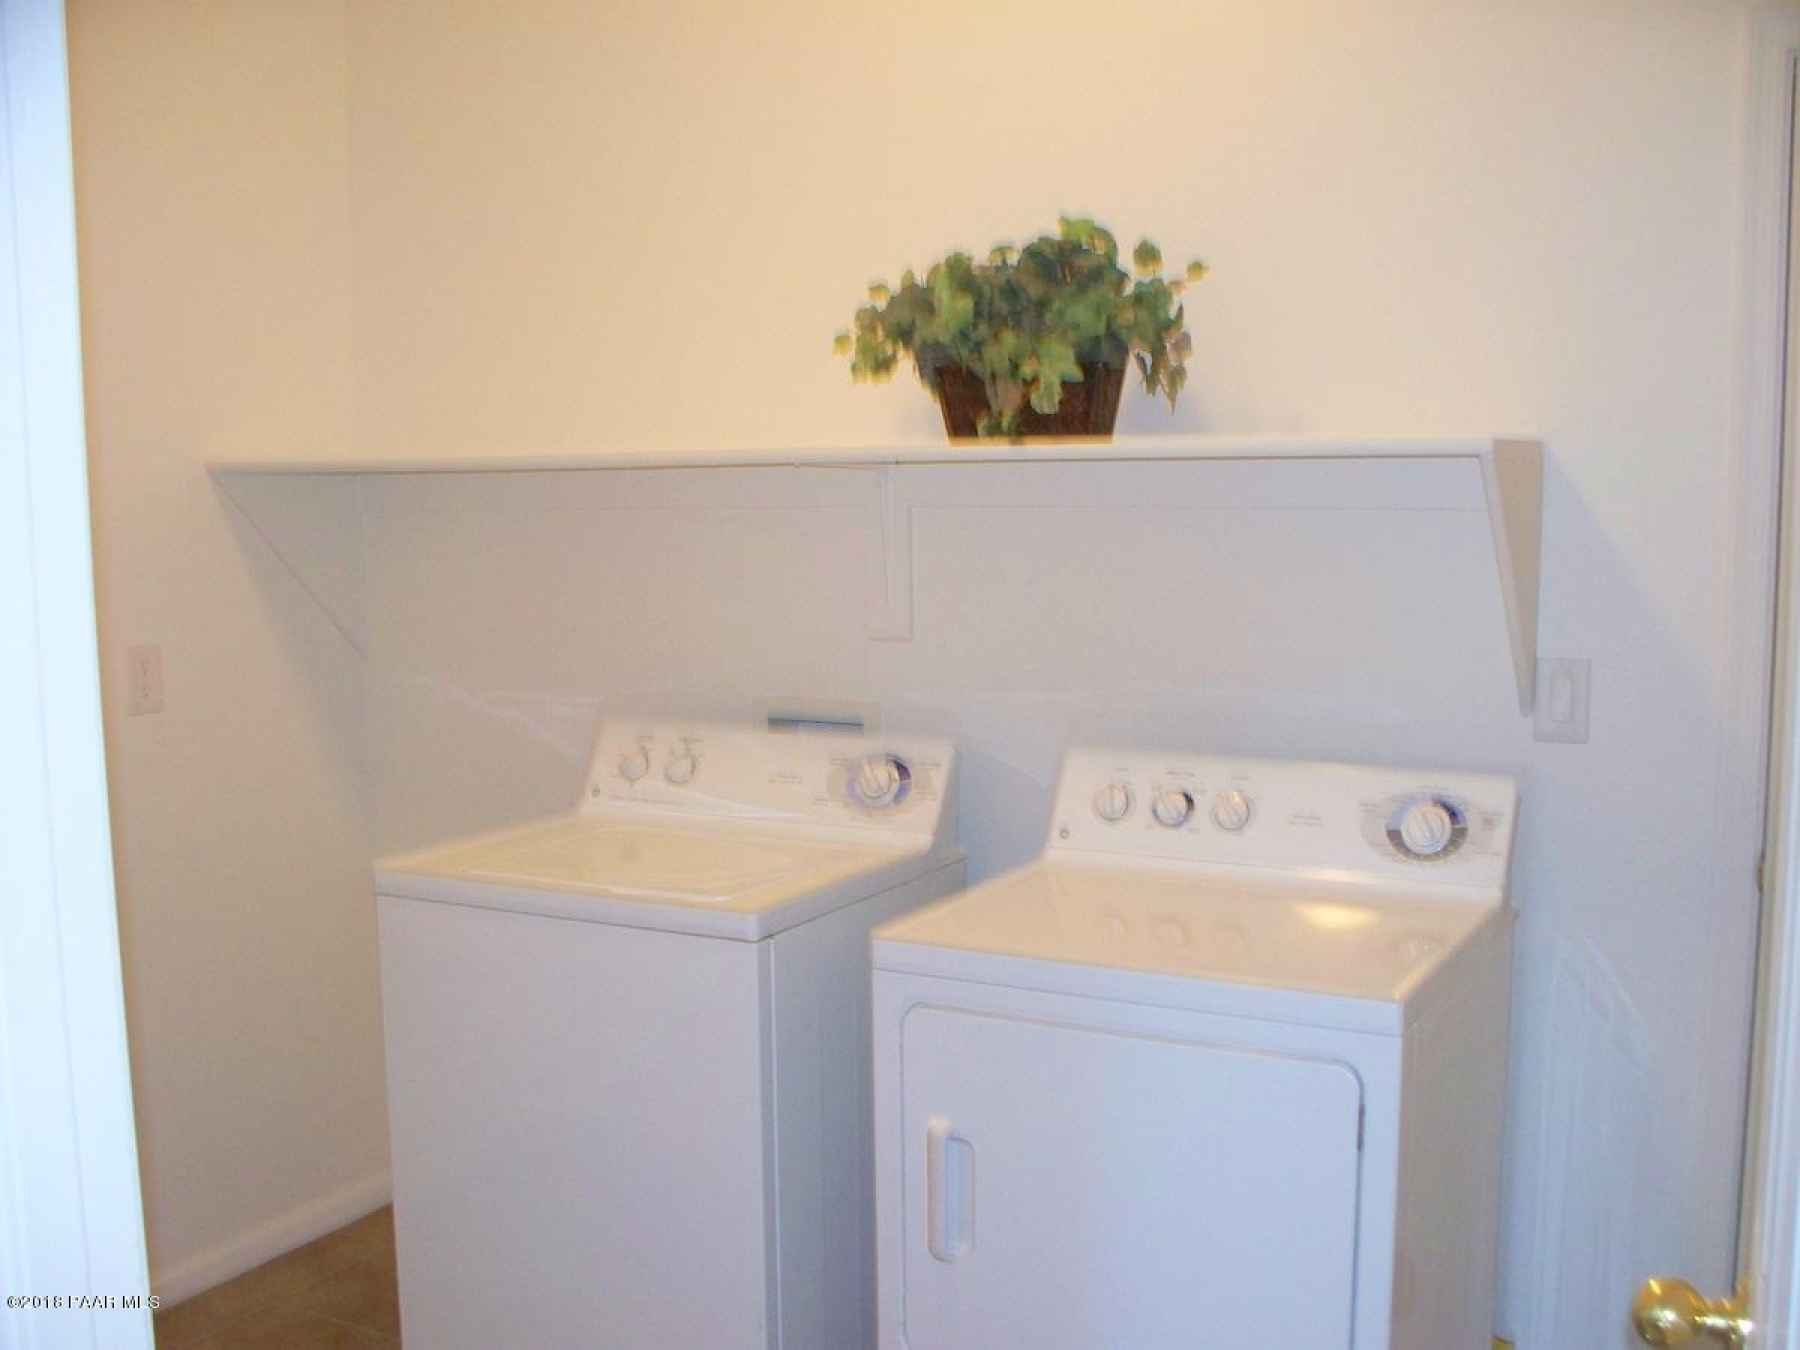 Inside Laundry Room with Washer & Dryer